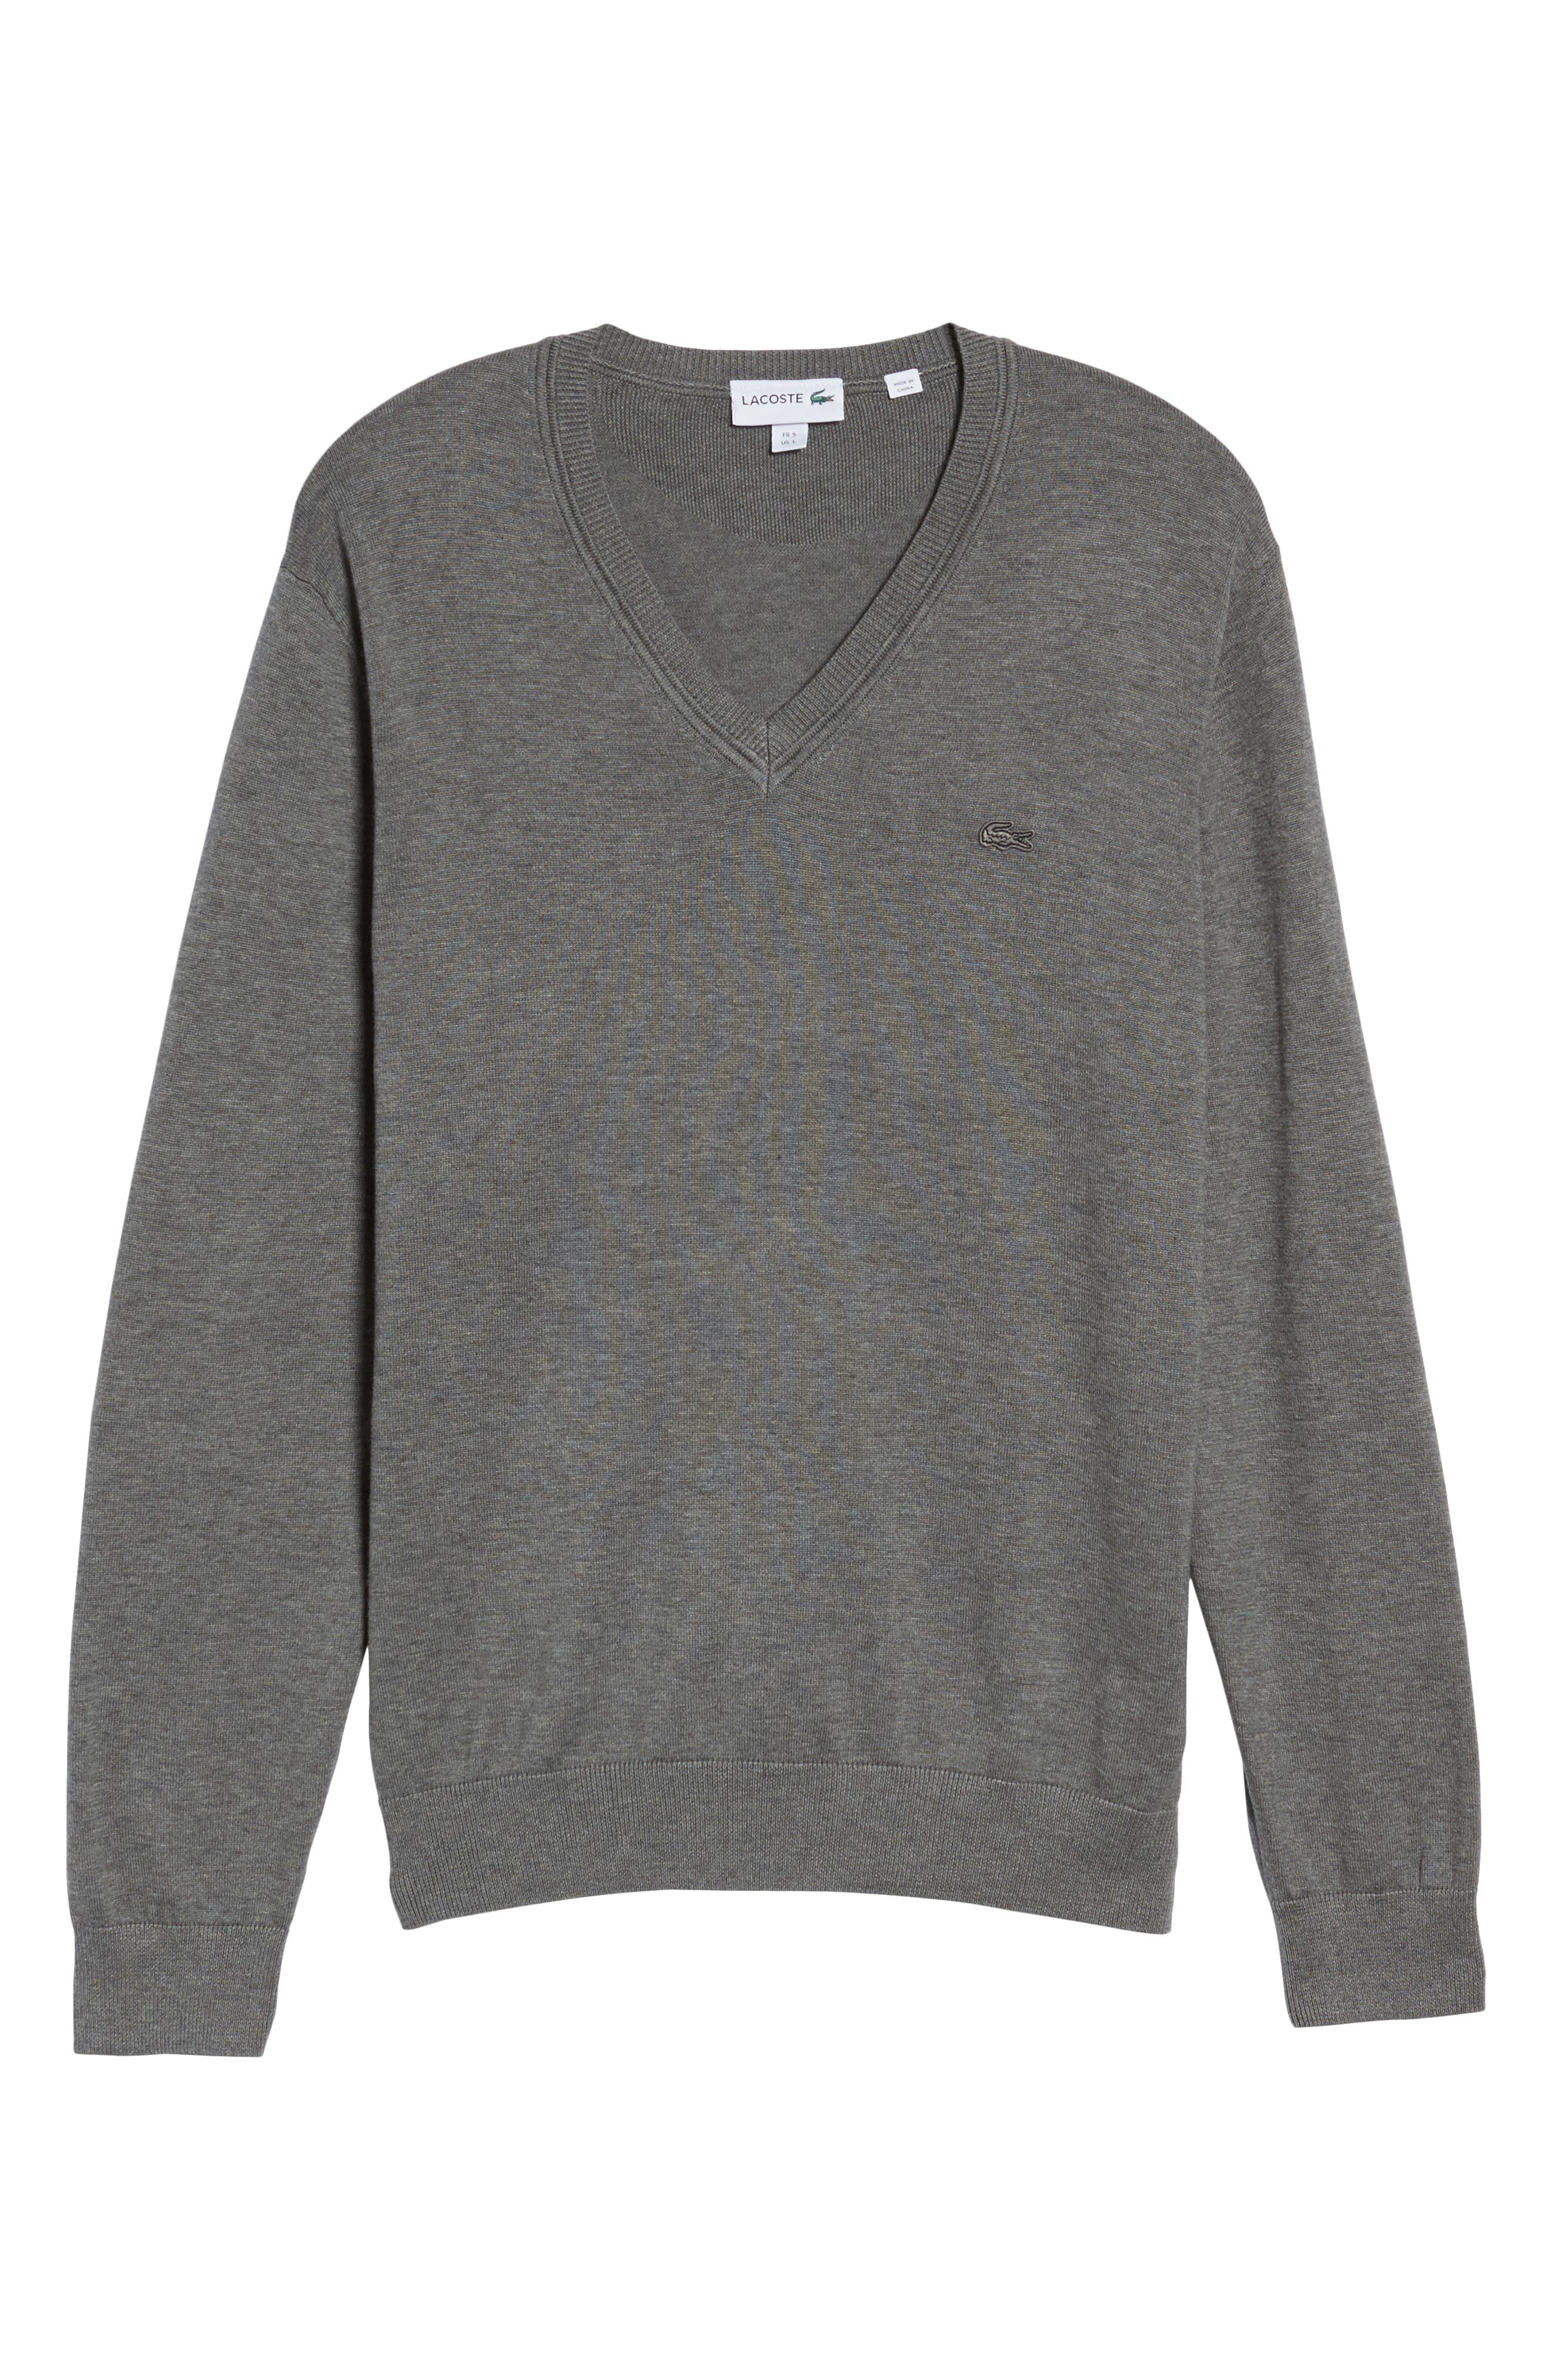 Cotton Jersey V-Neck Sweater,                             Alternate thumbnail 6, color,                             Galaxite